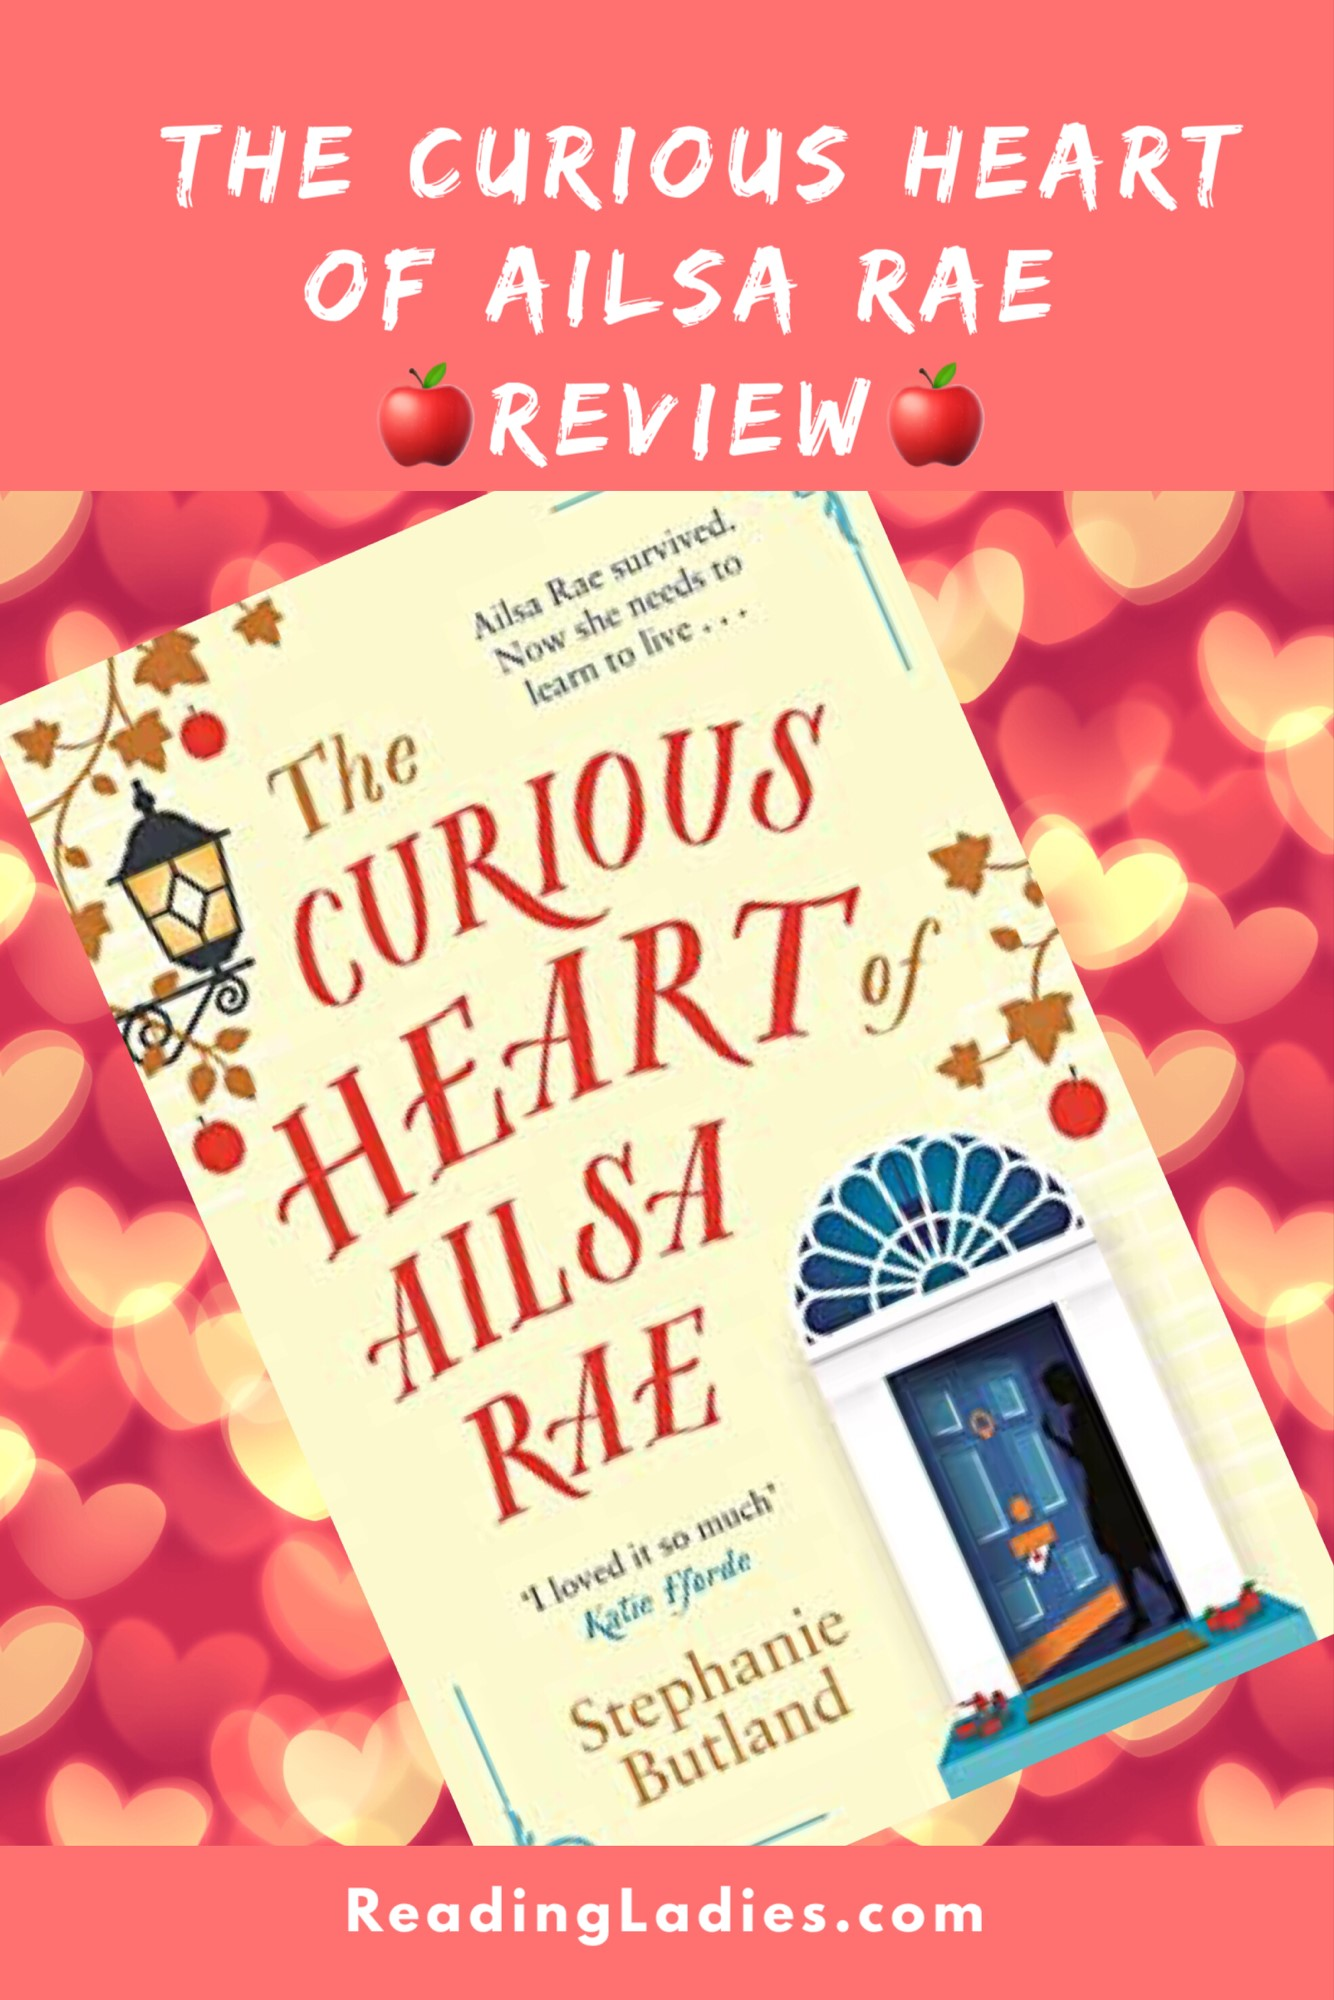 The Curious Heart of Ailsa Rae Review